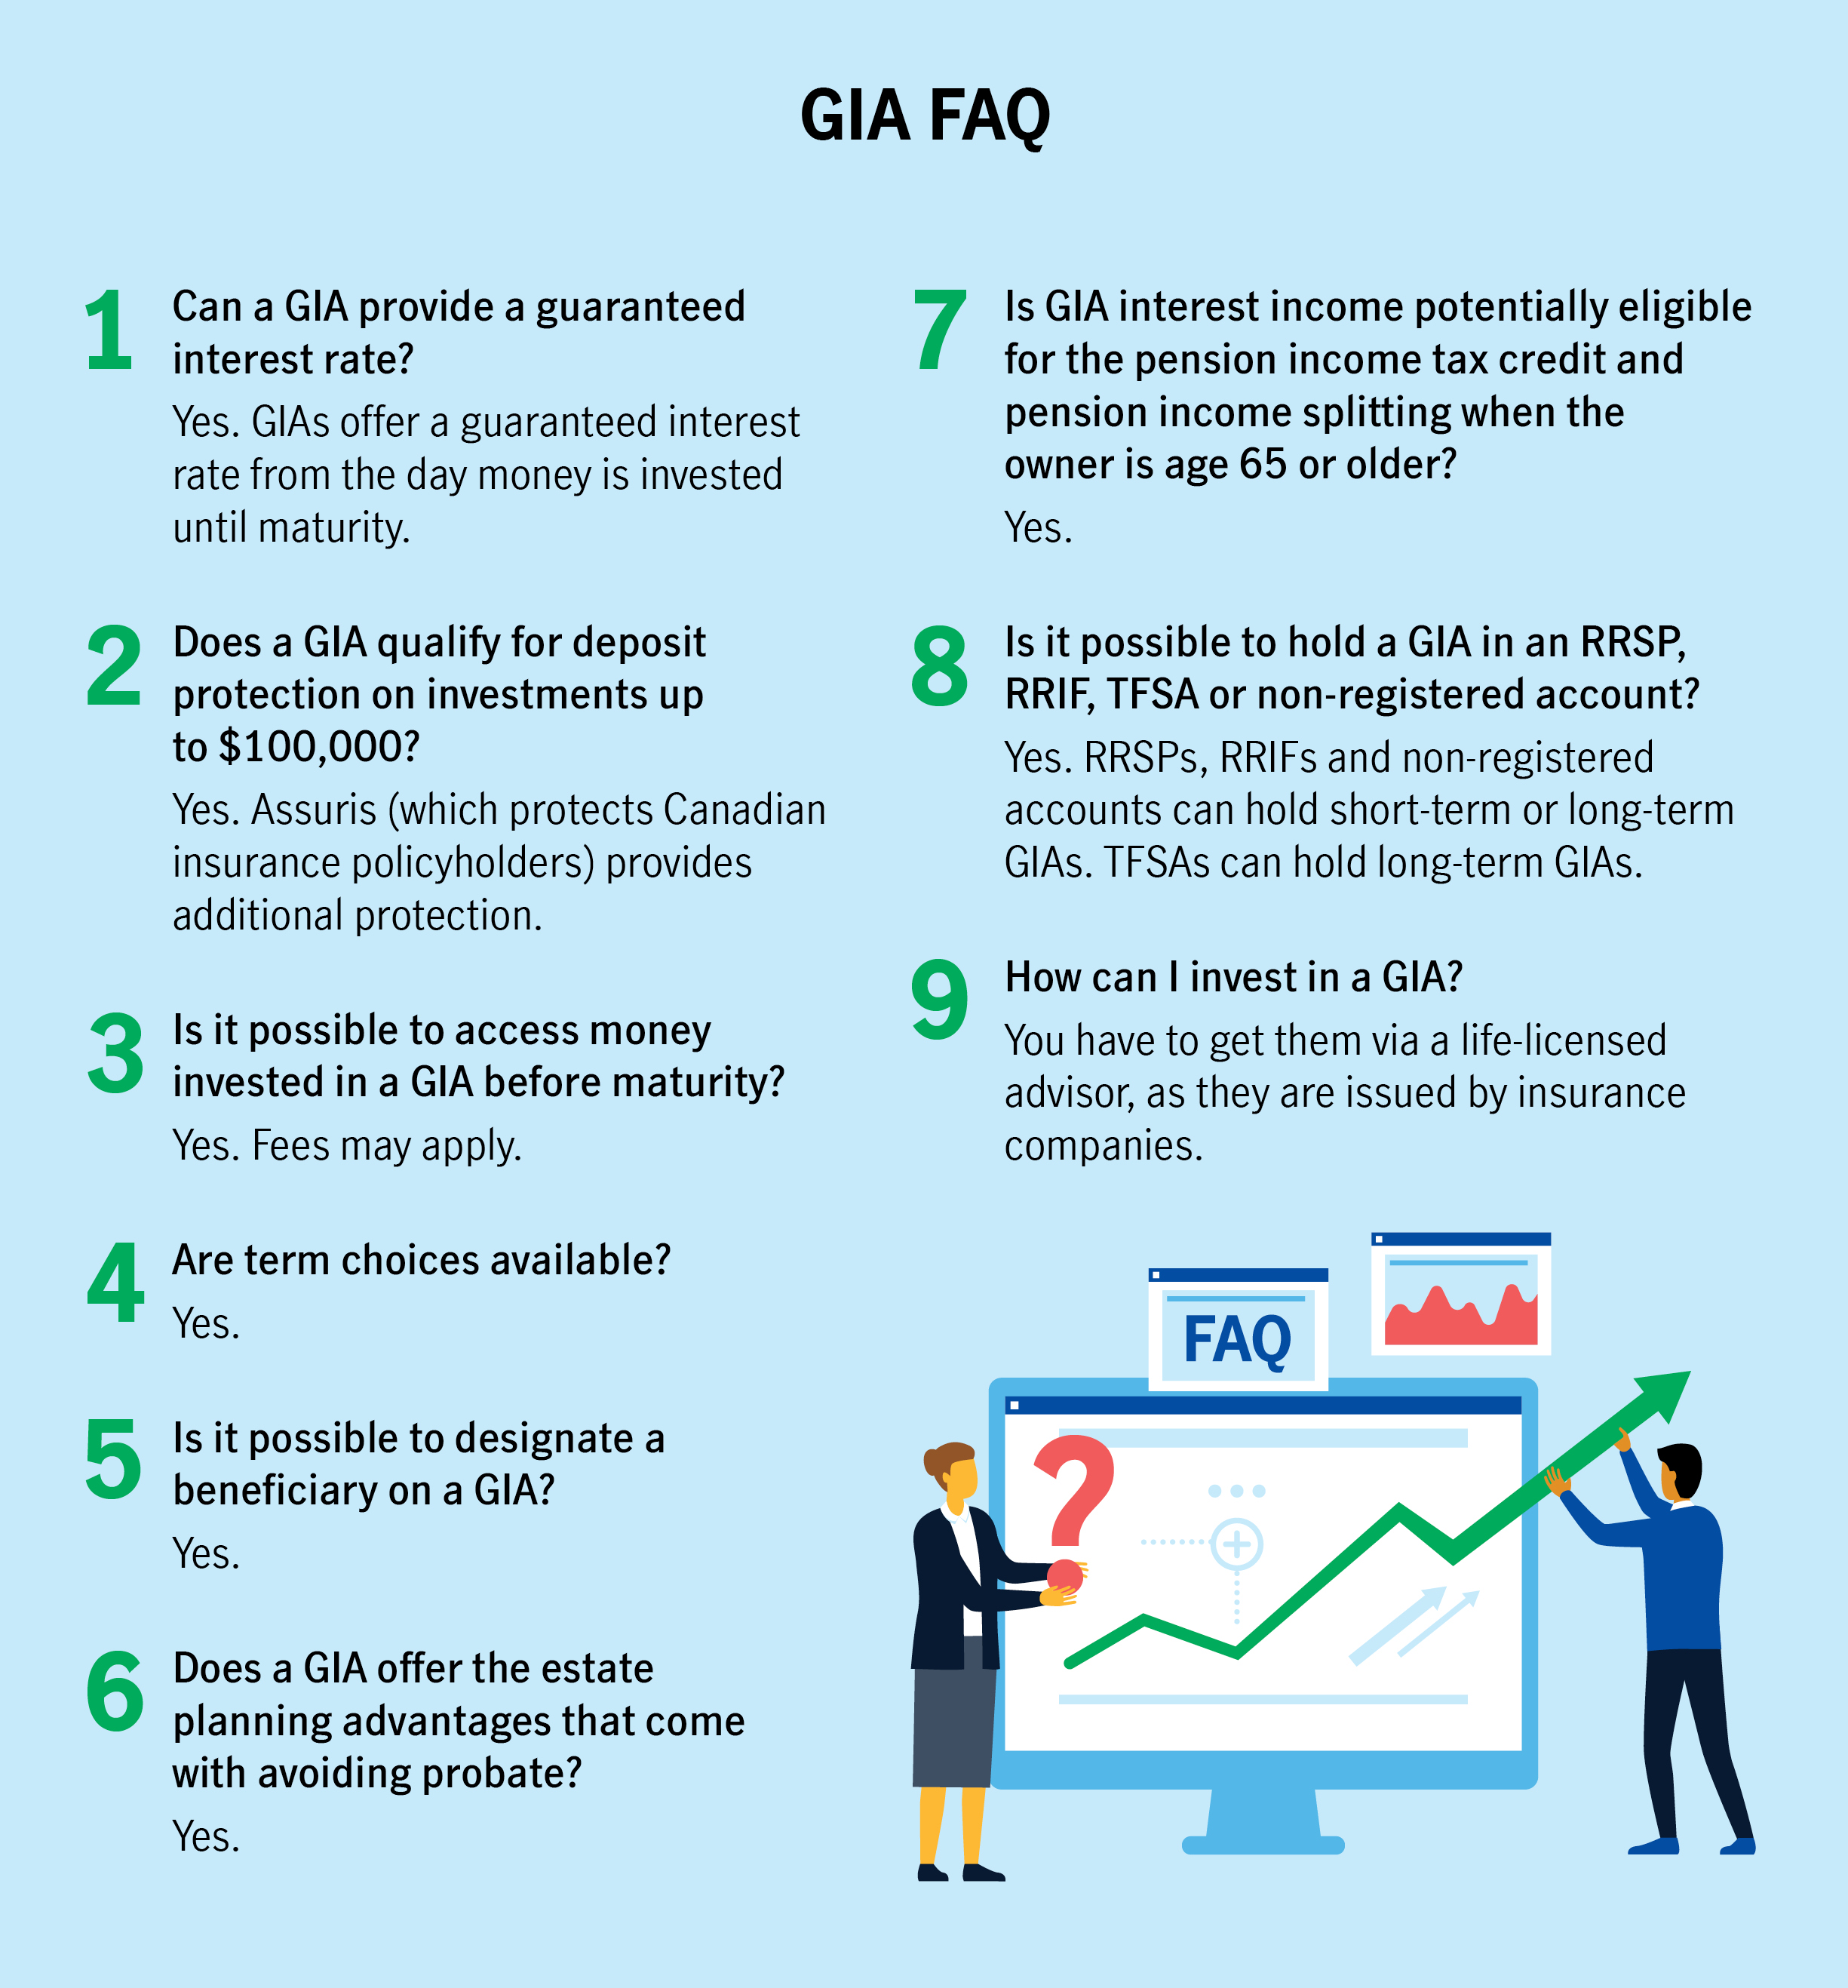 GIA FAQ  1.	Can a GIA provide a guaranteed interest rate? Yes. GIAs offer a guaranteed interest rate from the day money is invested until maturity.  2.	Does a GIA qualify for deposit protection on investments up to $100,000? Yes. Assuris (which protects Canadian insurance policyholders) provides additional protection.  3.	Is it possible to access money invested in a GIA before maturity? Yes. Fees may apply. 4.	Are term choices available? Yes.  5.	Is it possible to designate a beneficiary on a GIA? Yes. 6.	Does a GIA offer the estate planning advantages that come with avoiding probate? Yes. 7.	Is GIA interest income potentially eligible for the pension income tax credit and pension income splitting when the owner is age 65 or older? Yes. 8.	Is it possible to hold a GIA in an RRSP, RRIF, TFSA or non-registered account? Yes. RRSPs, RRIFs and non-registered accounts can hold short-term or long-term GIAs. TFSAs can hold long-term GIAs. 9.	How can I invest in a GIA? You have to get them via a life-licensed advisor, as they are issued by insurance companies.